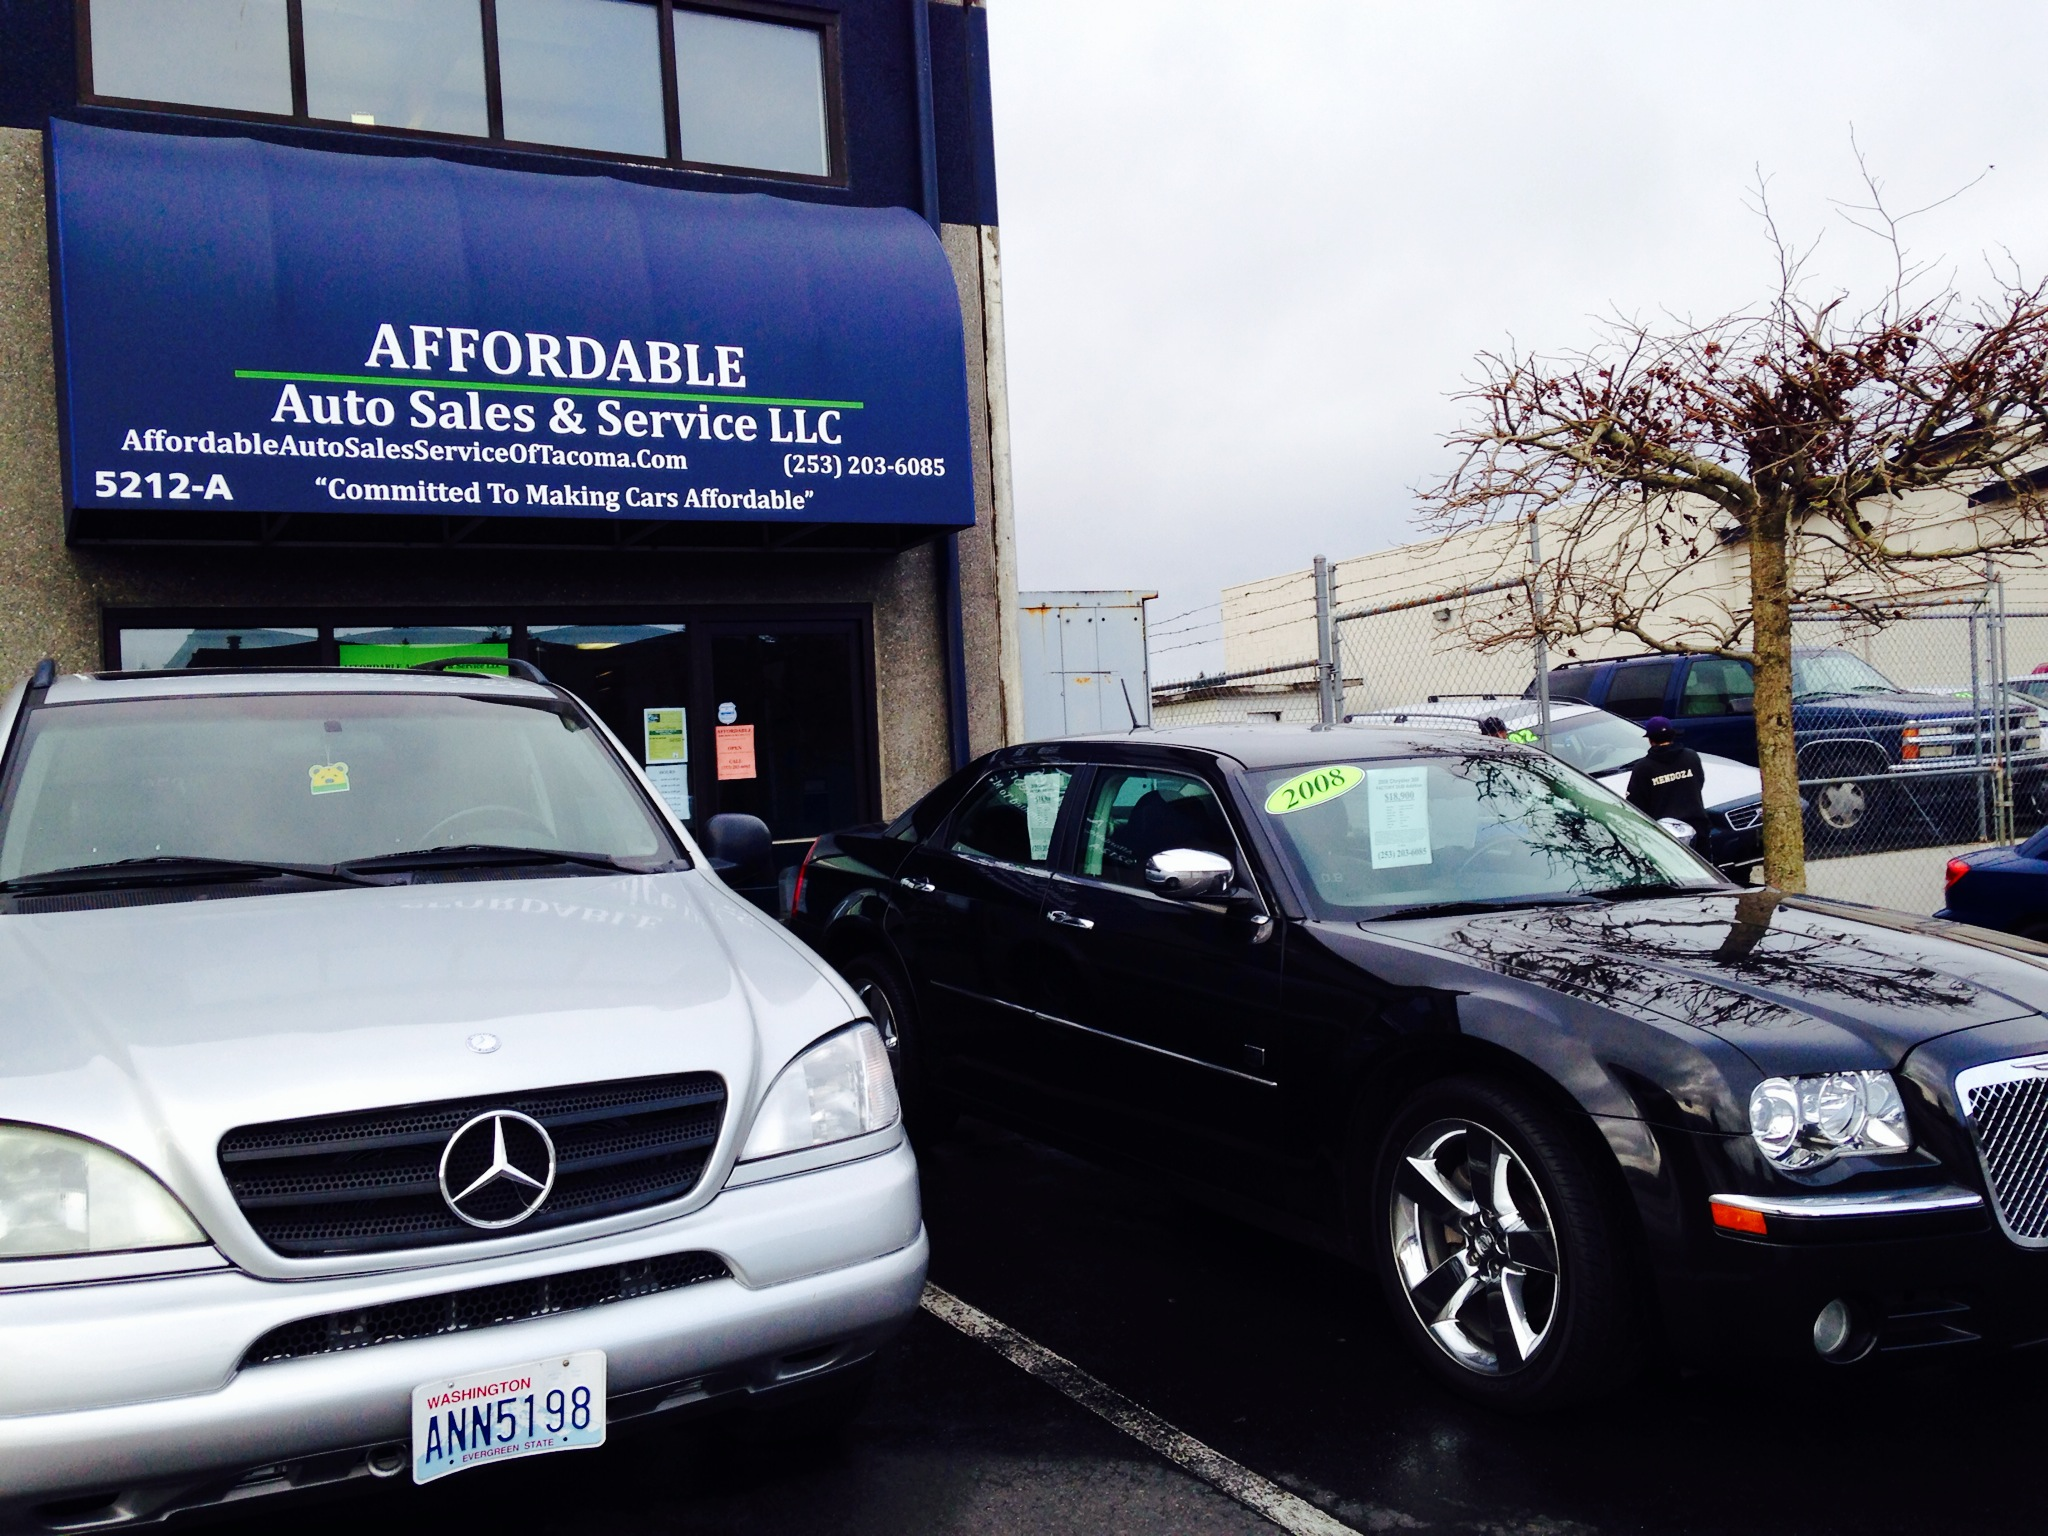 Affordable Auto Sales & Service LLC Pacific Hwy SW Lakewood